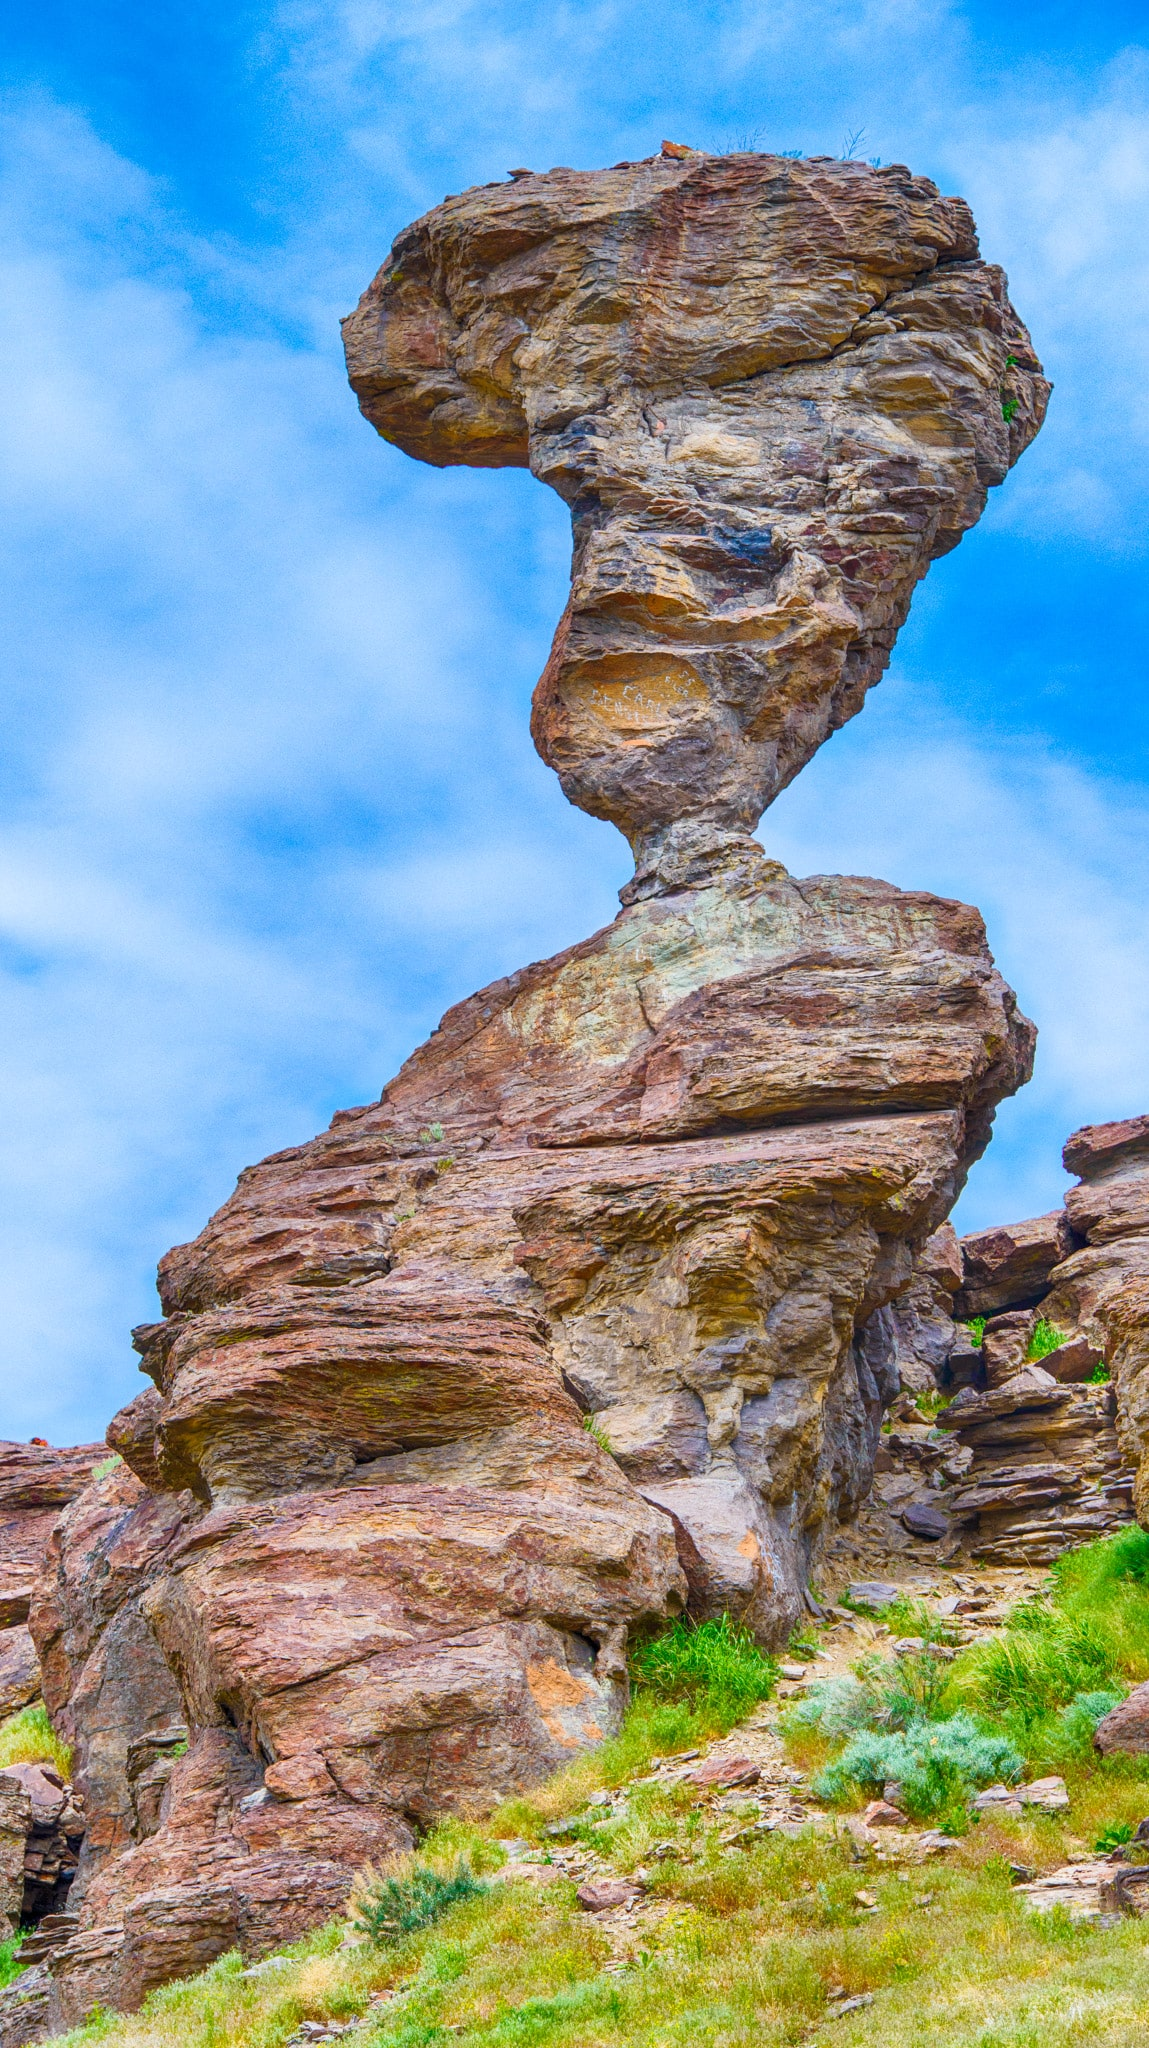 Balanced Rock, located on BLM land near Balanced Rock Park, is a rock formation of wind-carved rhyolite. Because vandals have attempted to topple the rock at various time in the past, the small neck has been reinforced with concrete.